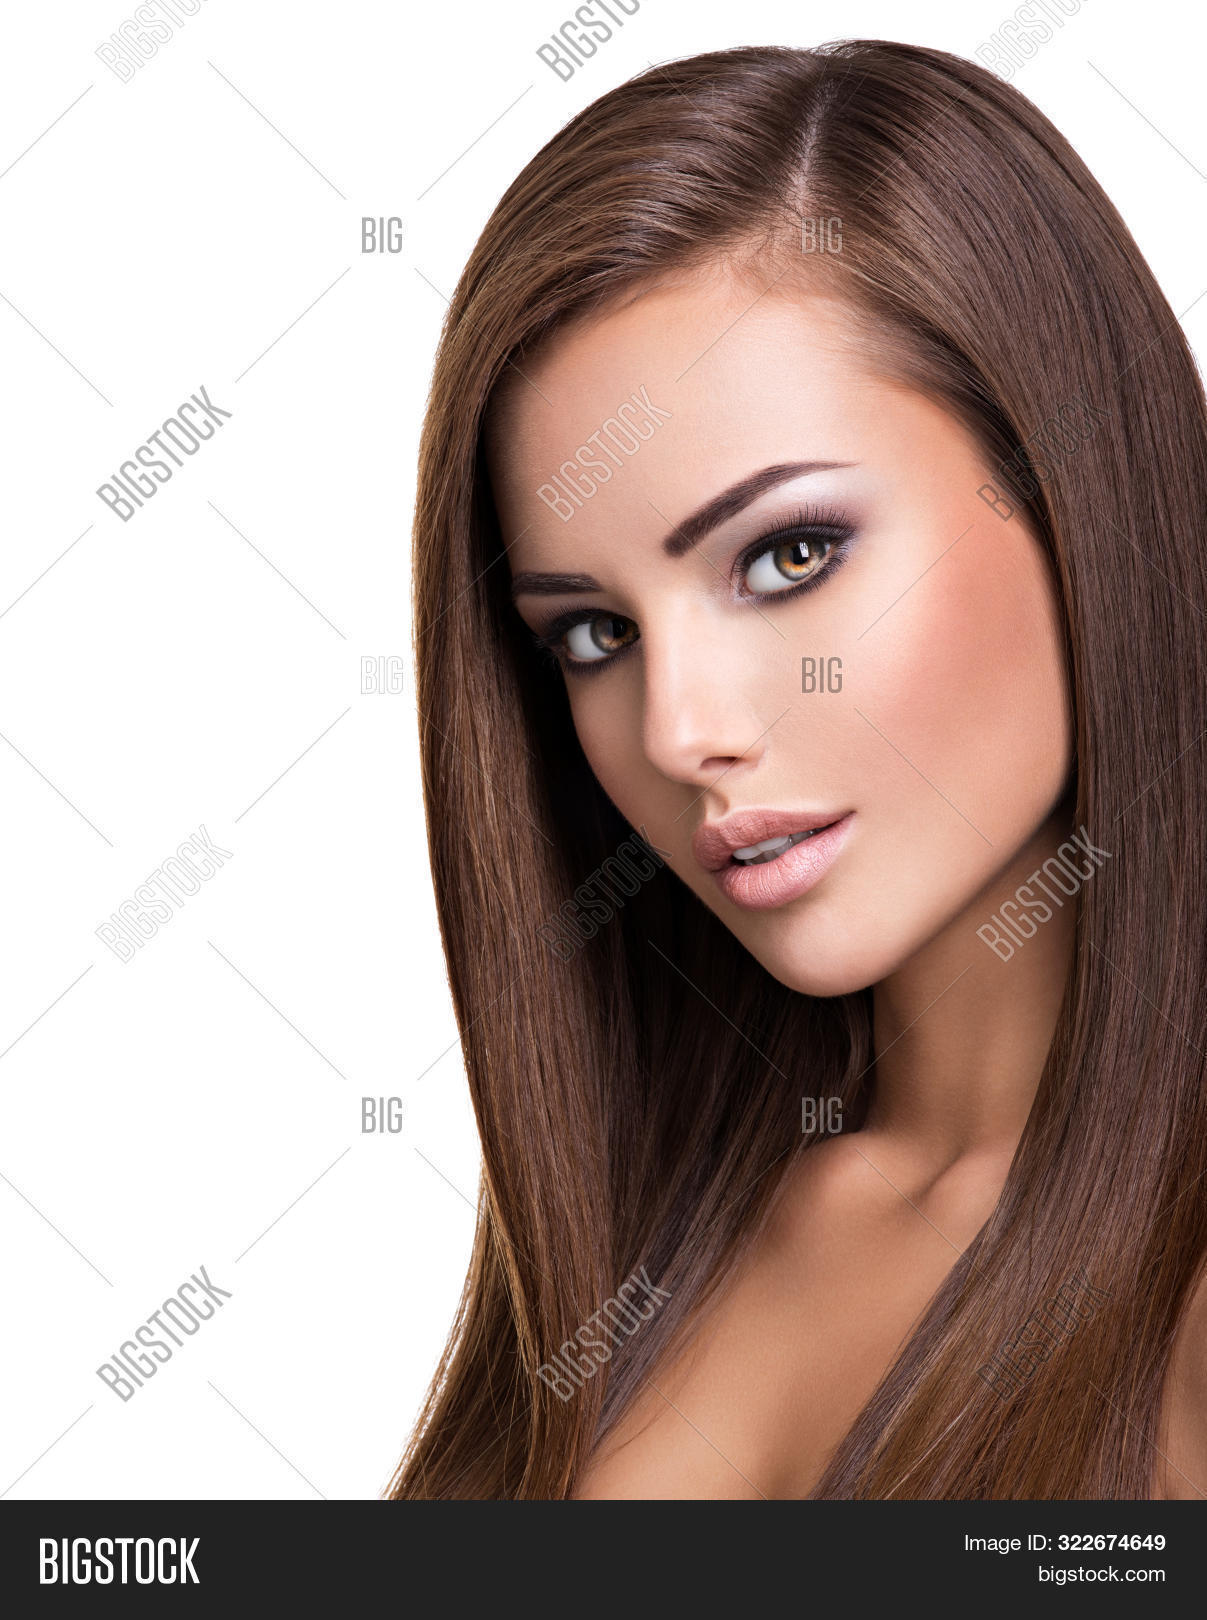 background,beautiful,beauty,brown hair,caucasian,closeup,dark,face,fashion,female,girl,glamour,hair,hairstyle,isolated,long,long hair,looking,make-up,makeup,model,one,portrait,posing,pretty,sexy,straight,straight hair,studio,style,white,woman